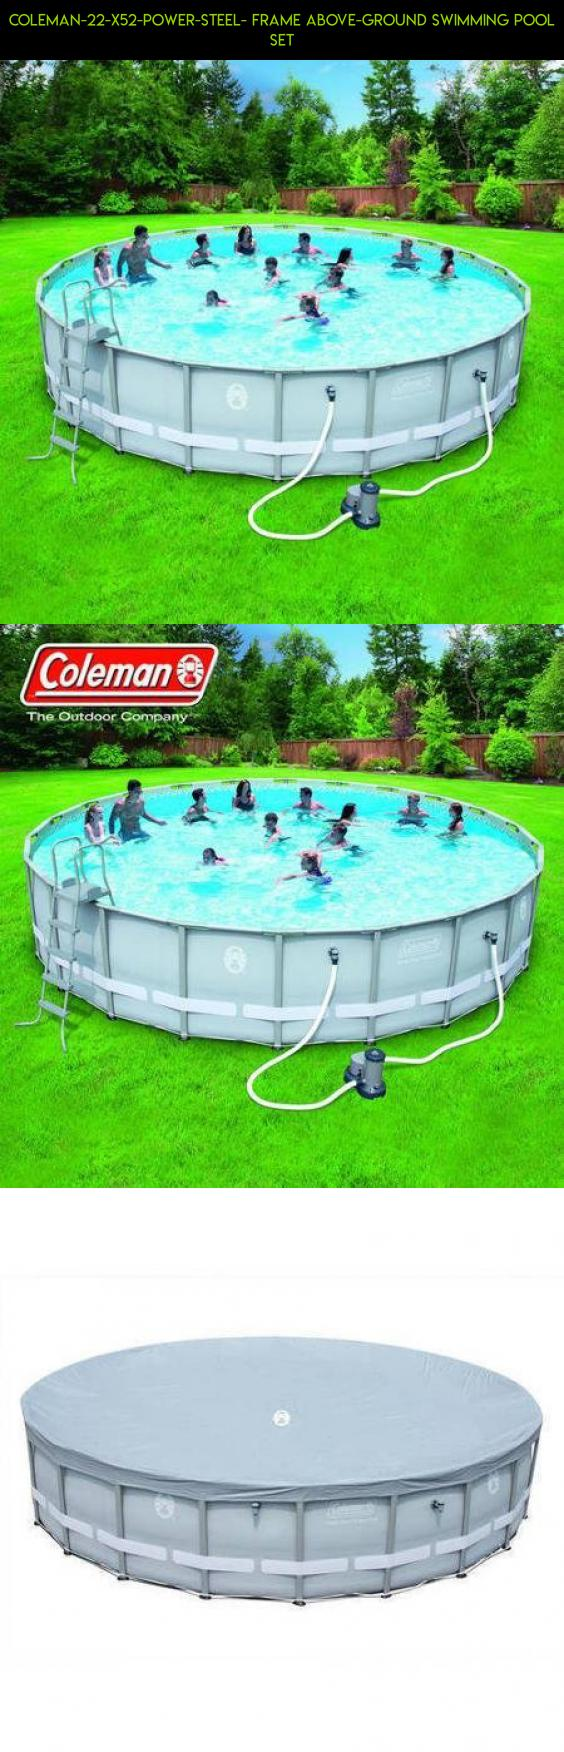 Coleman-22-x52-Power-Steel- Frame Above-Ground Swimming Pool set ...